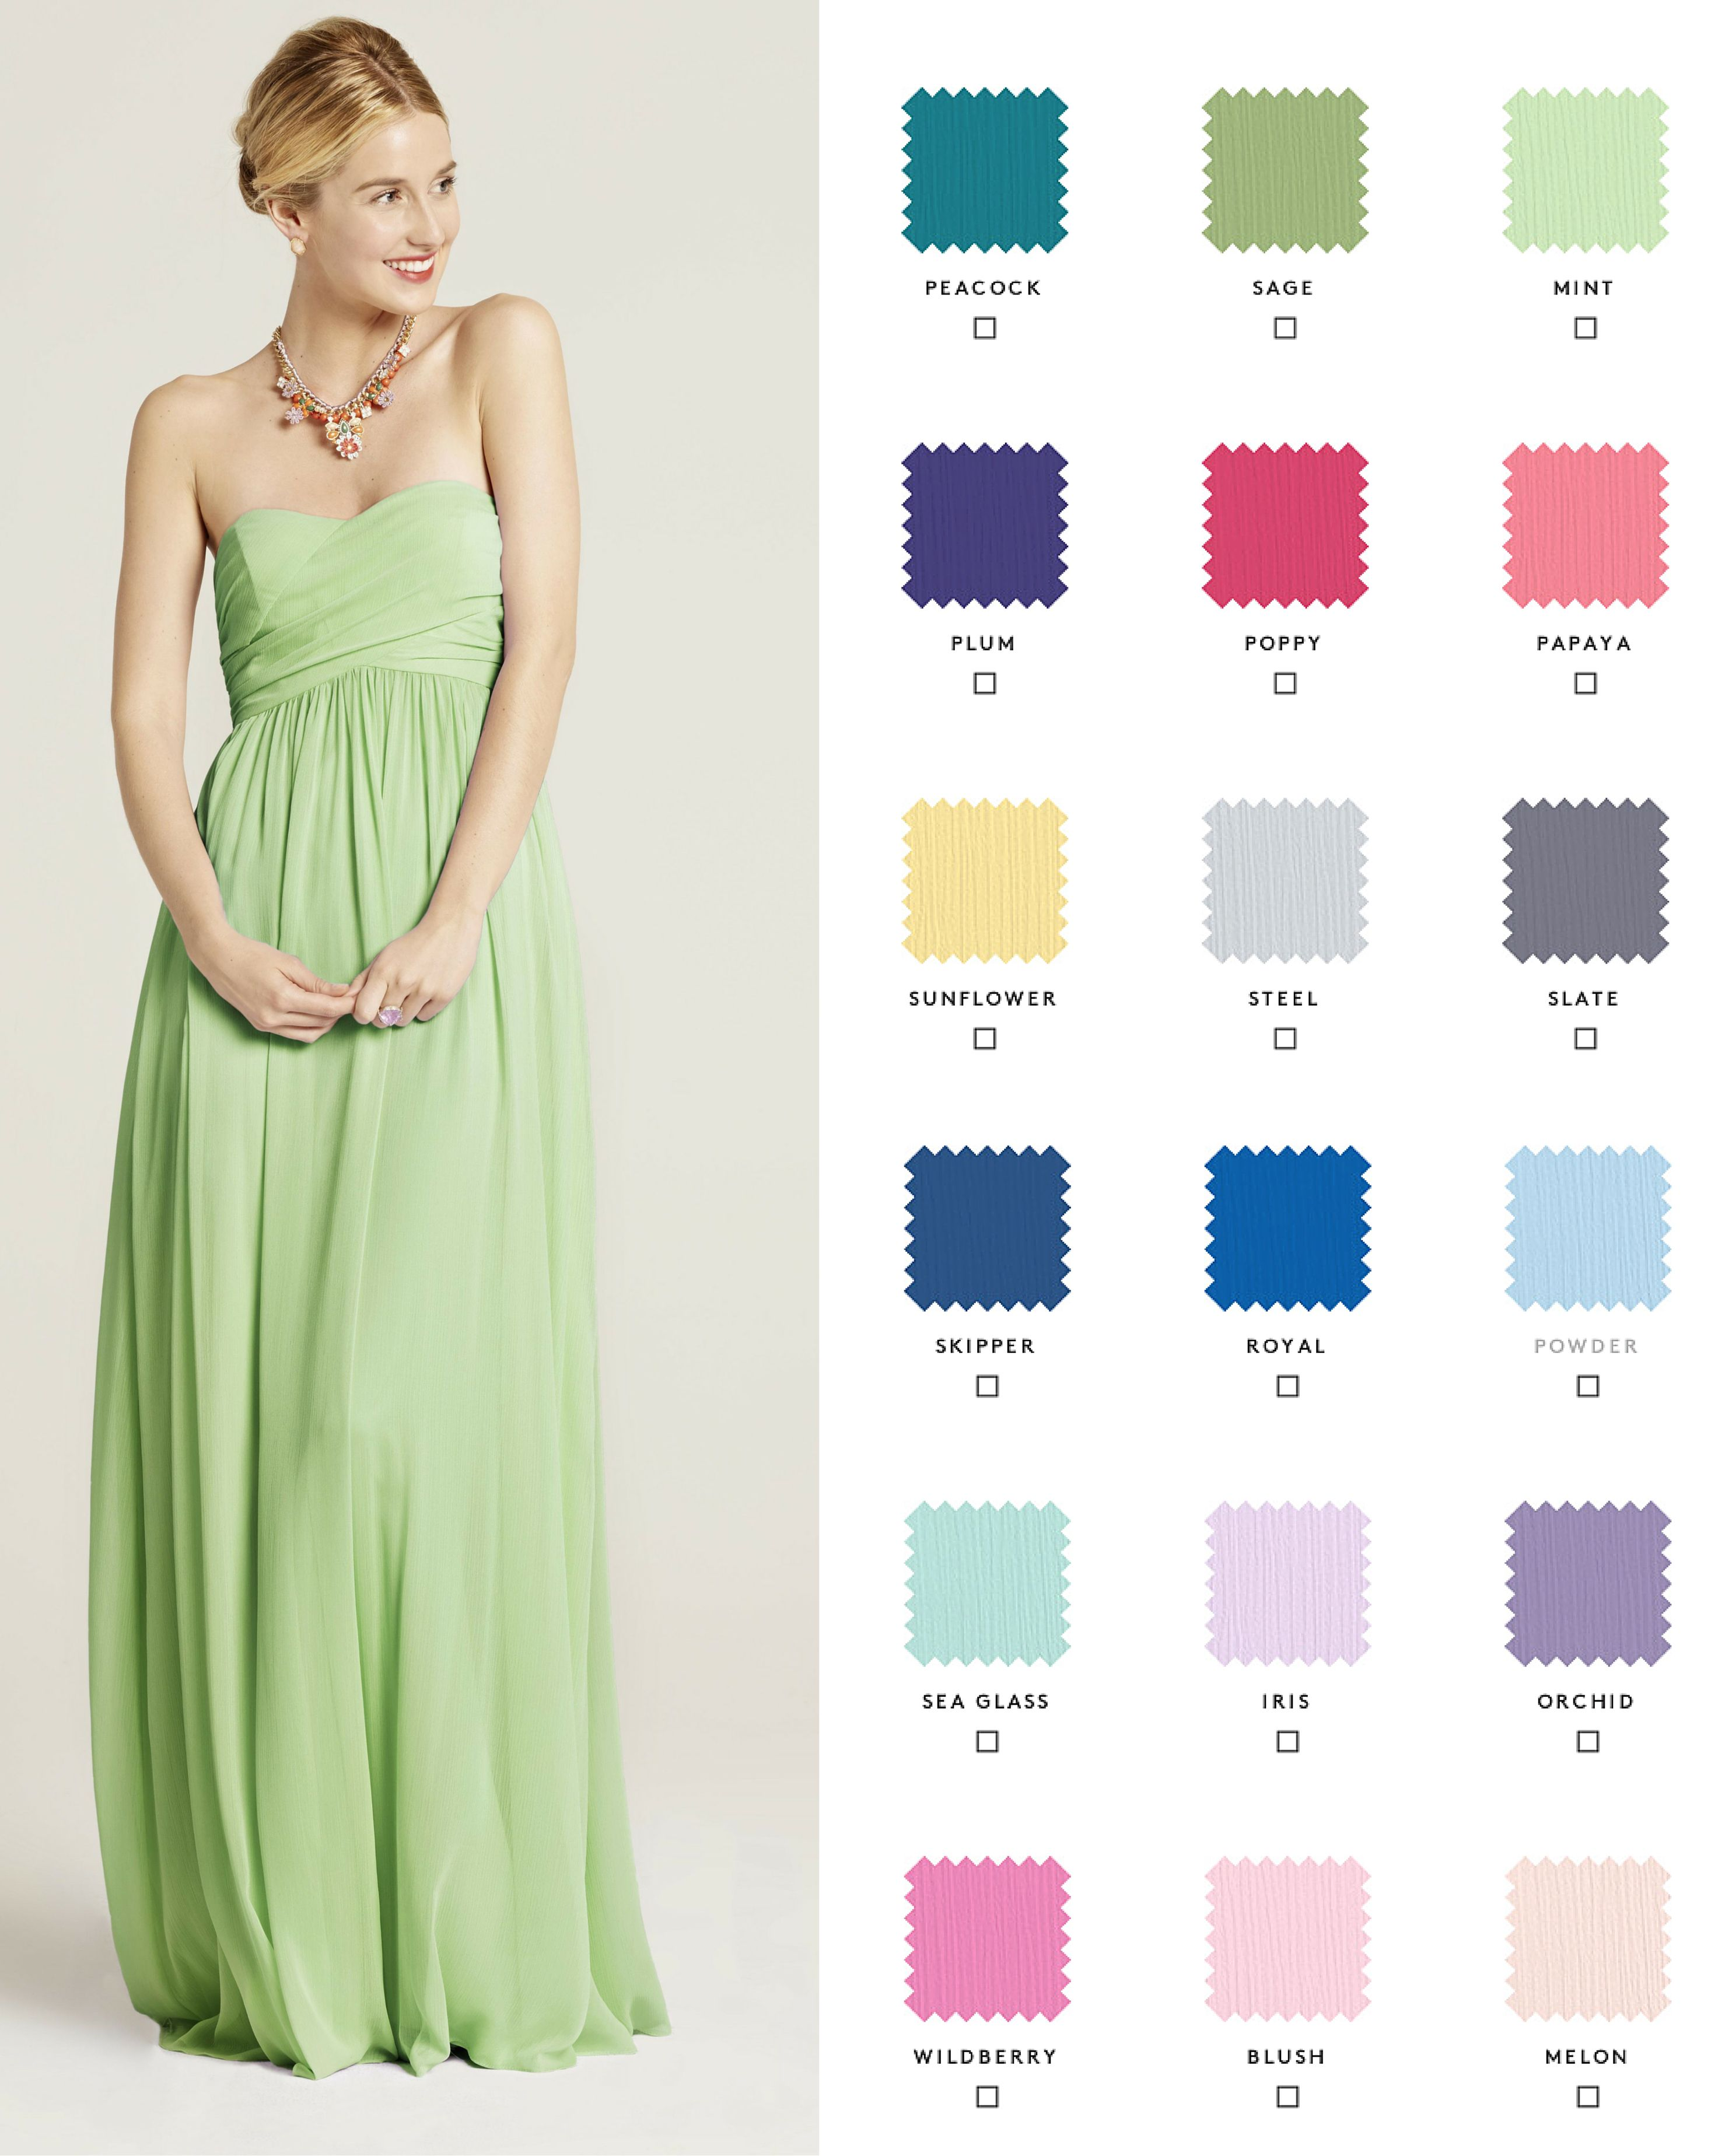 Request free color swatches to see our shades in person union request free color swatches to see our shades in person union station bridesmaids dresses ombrellifo Image collections